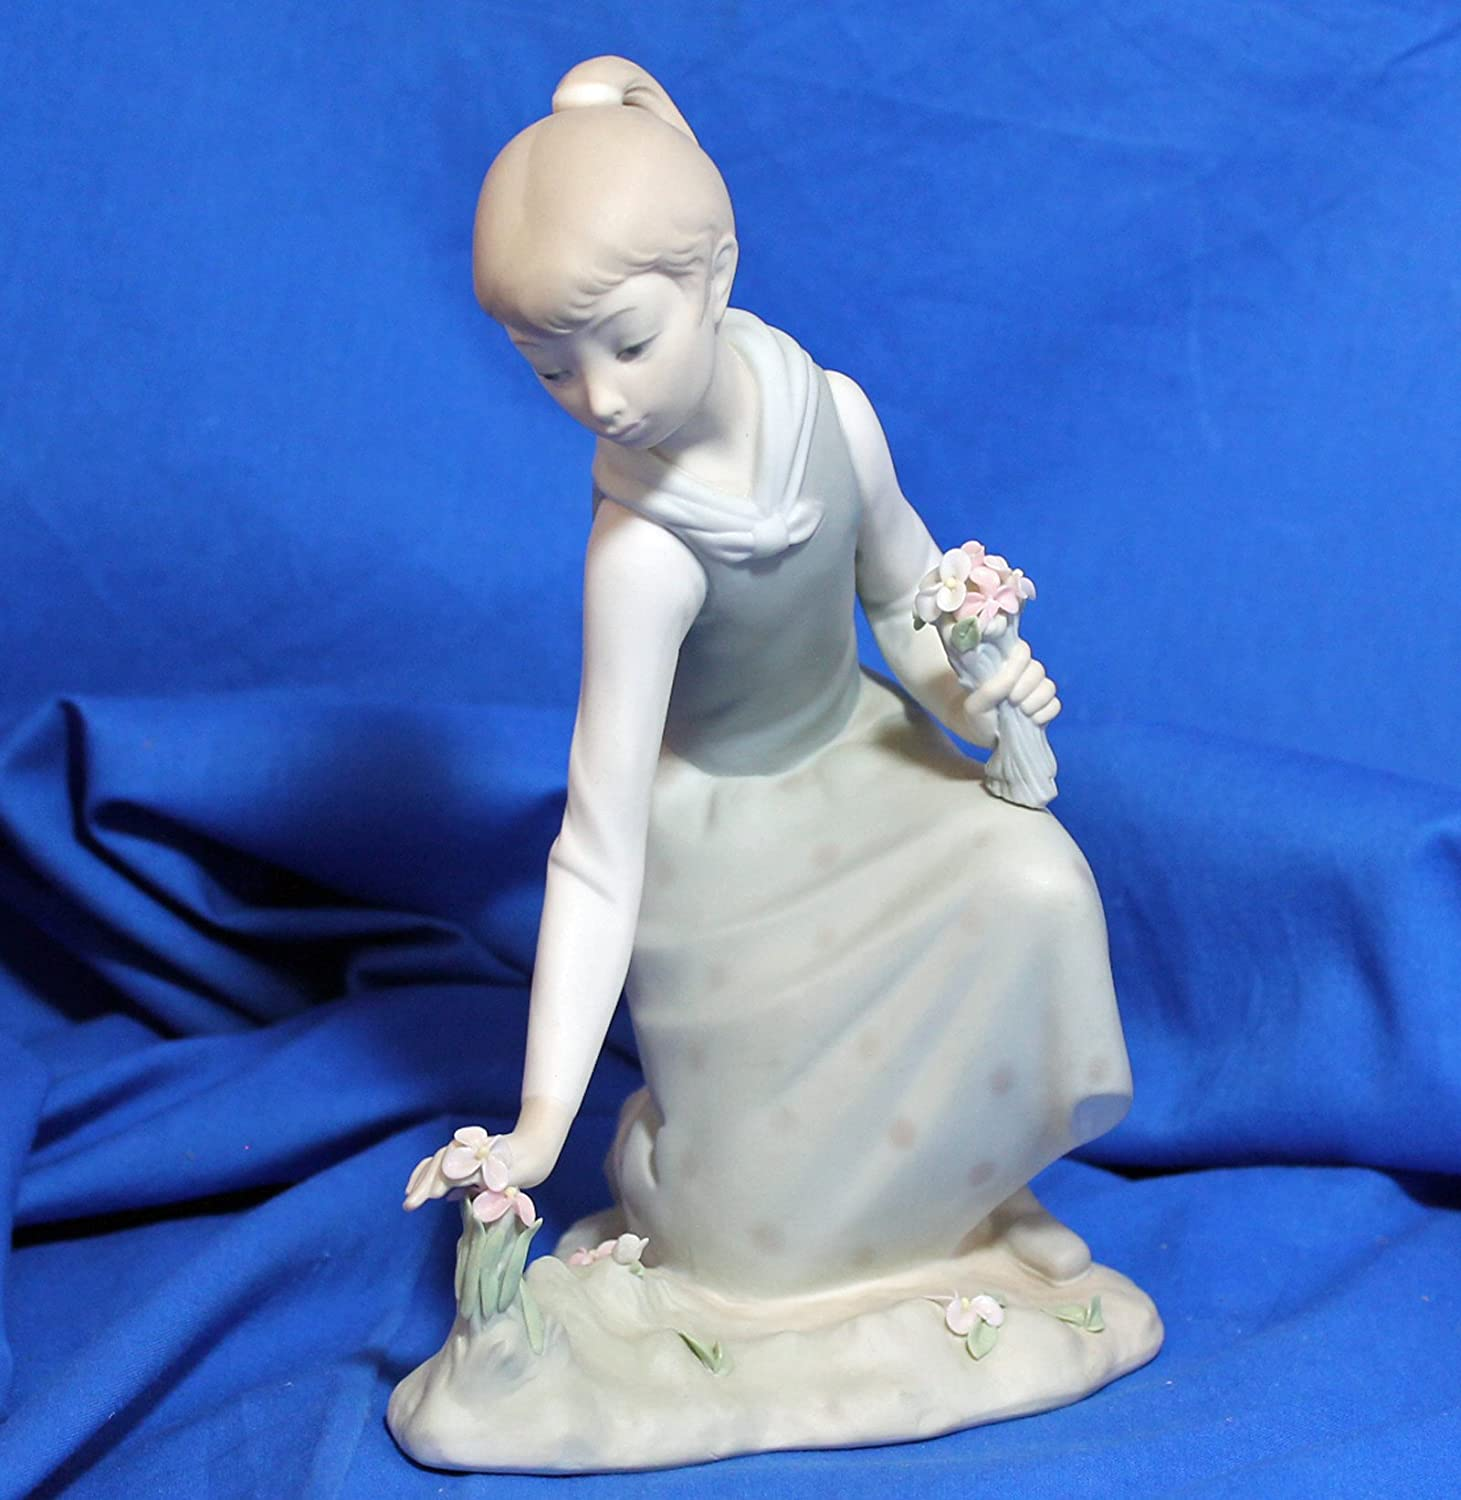 6-1//4-Inch Cosmos 96651 Cuddle Me with Blossoms Ceramic Figurine